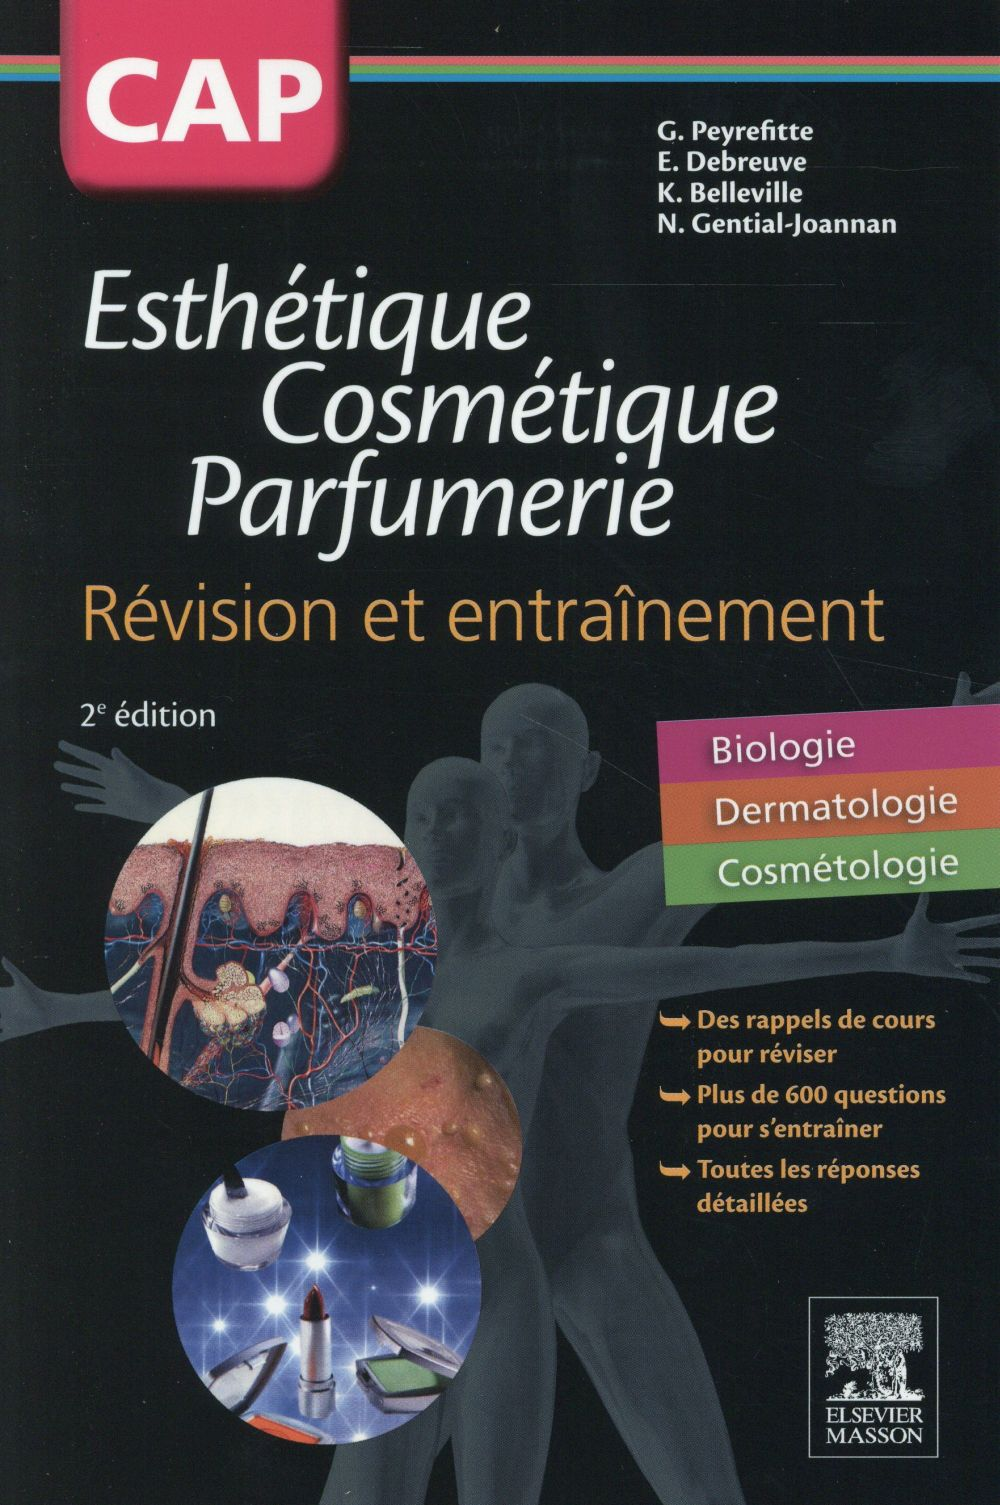 CAP ESTHETIQUE  -  COSMETIQUE  -  PARFUMERIE (2E EDITION) PEYREFITTTE, GERARD Elsevier Masson